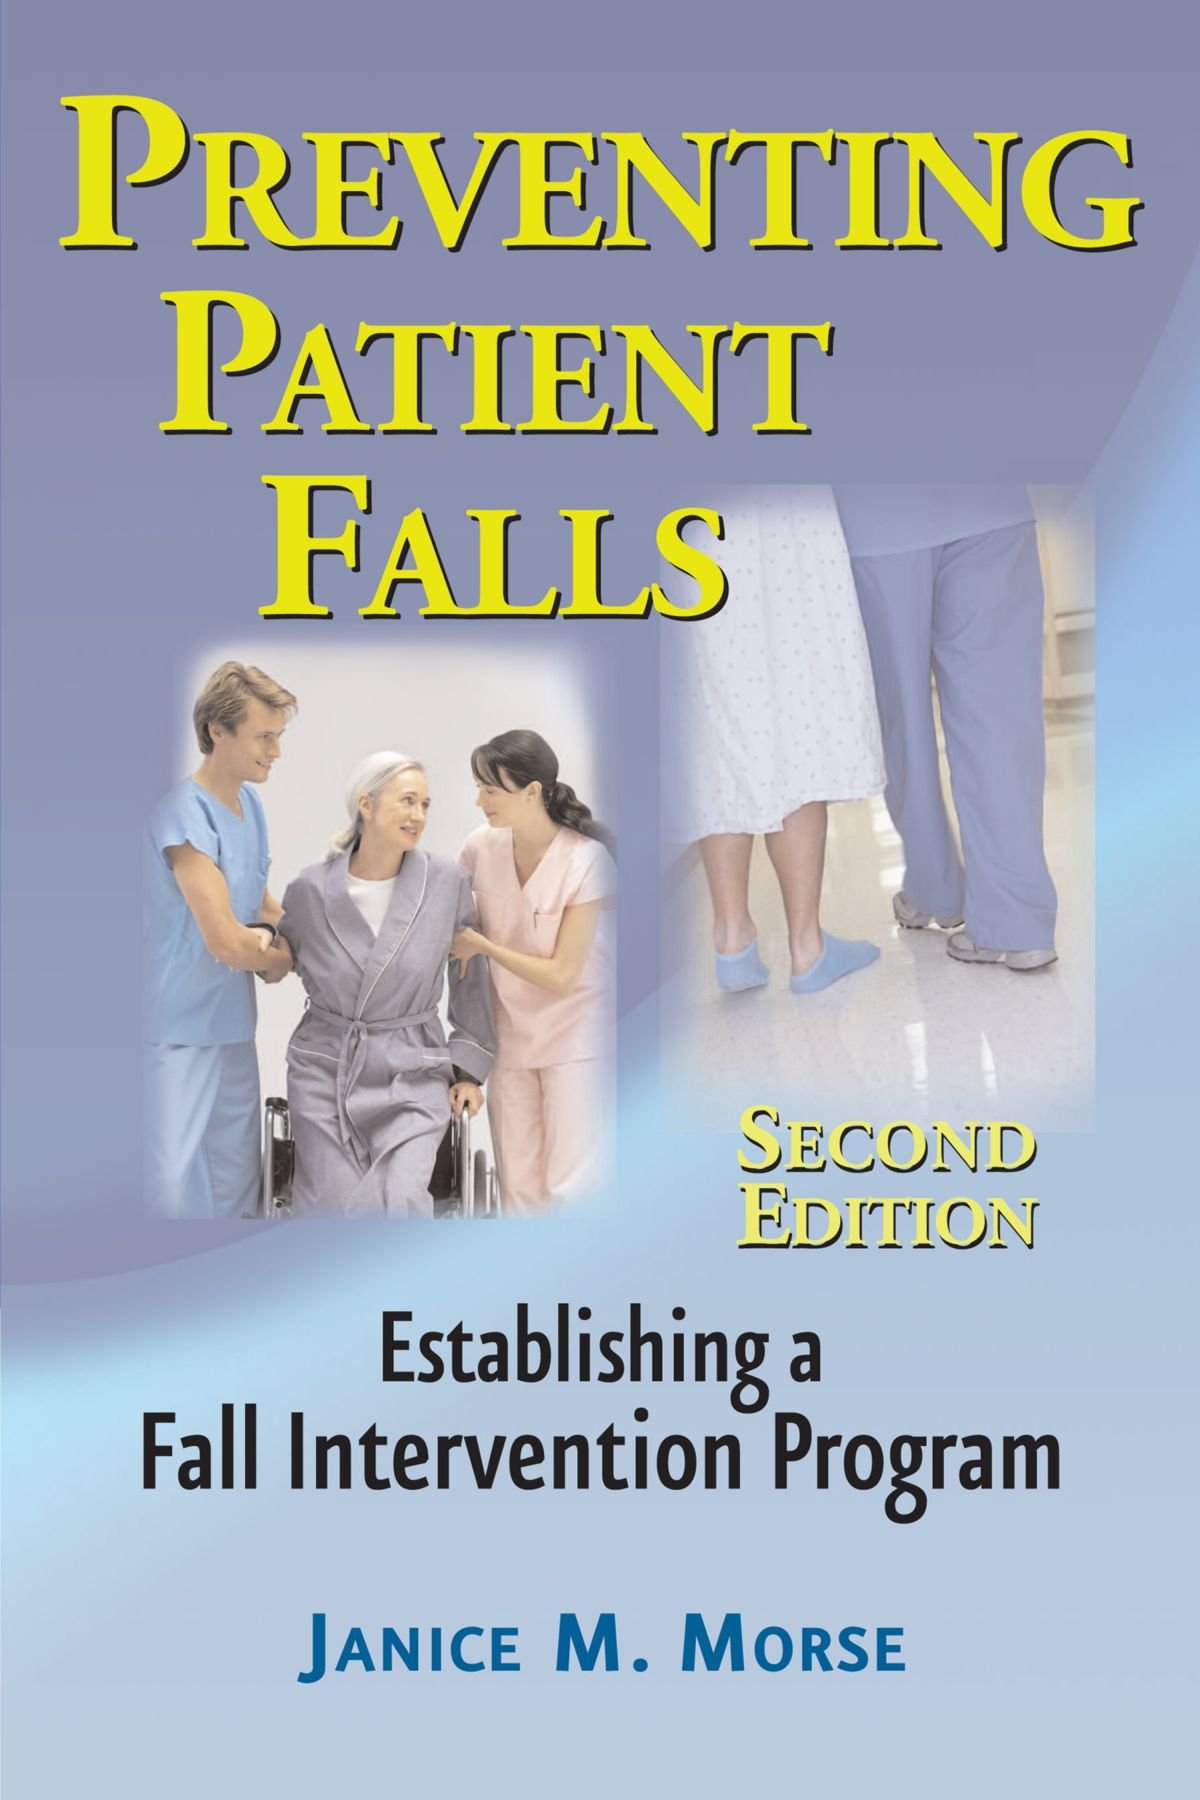 Preventing Patient Falls: Second Edition